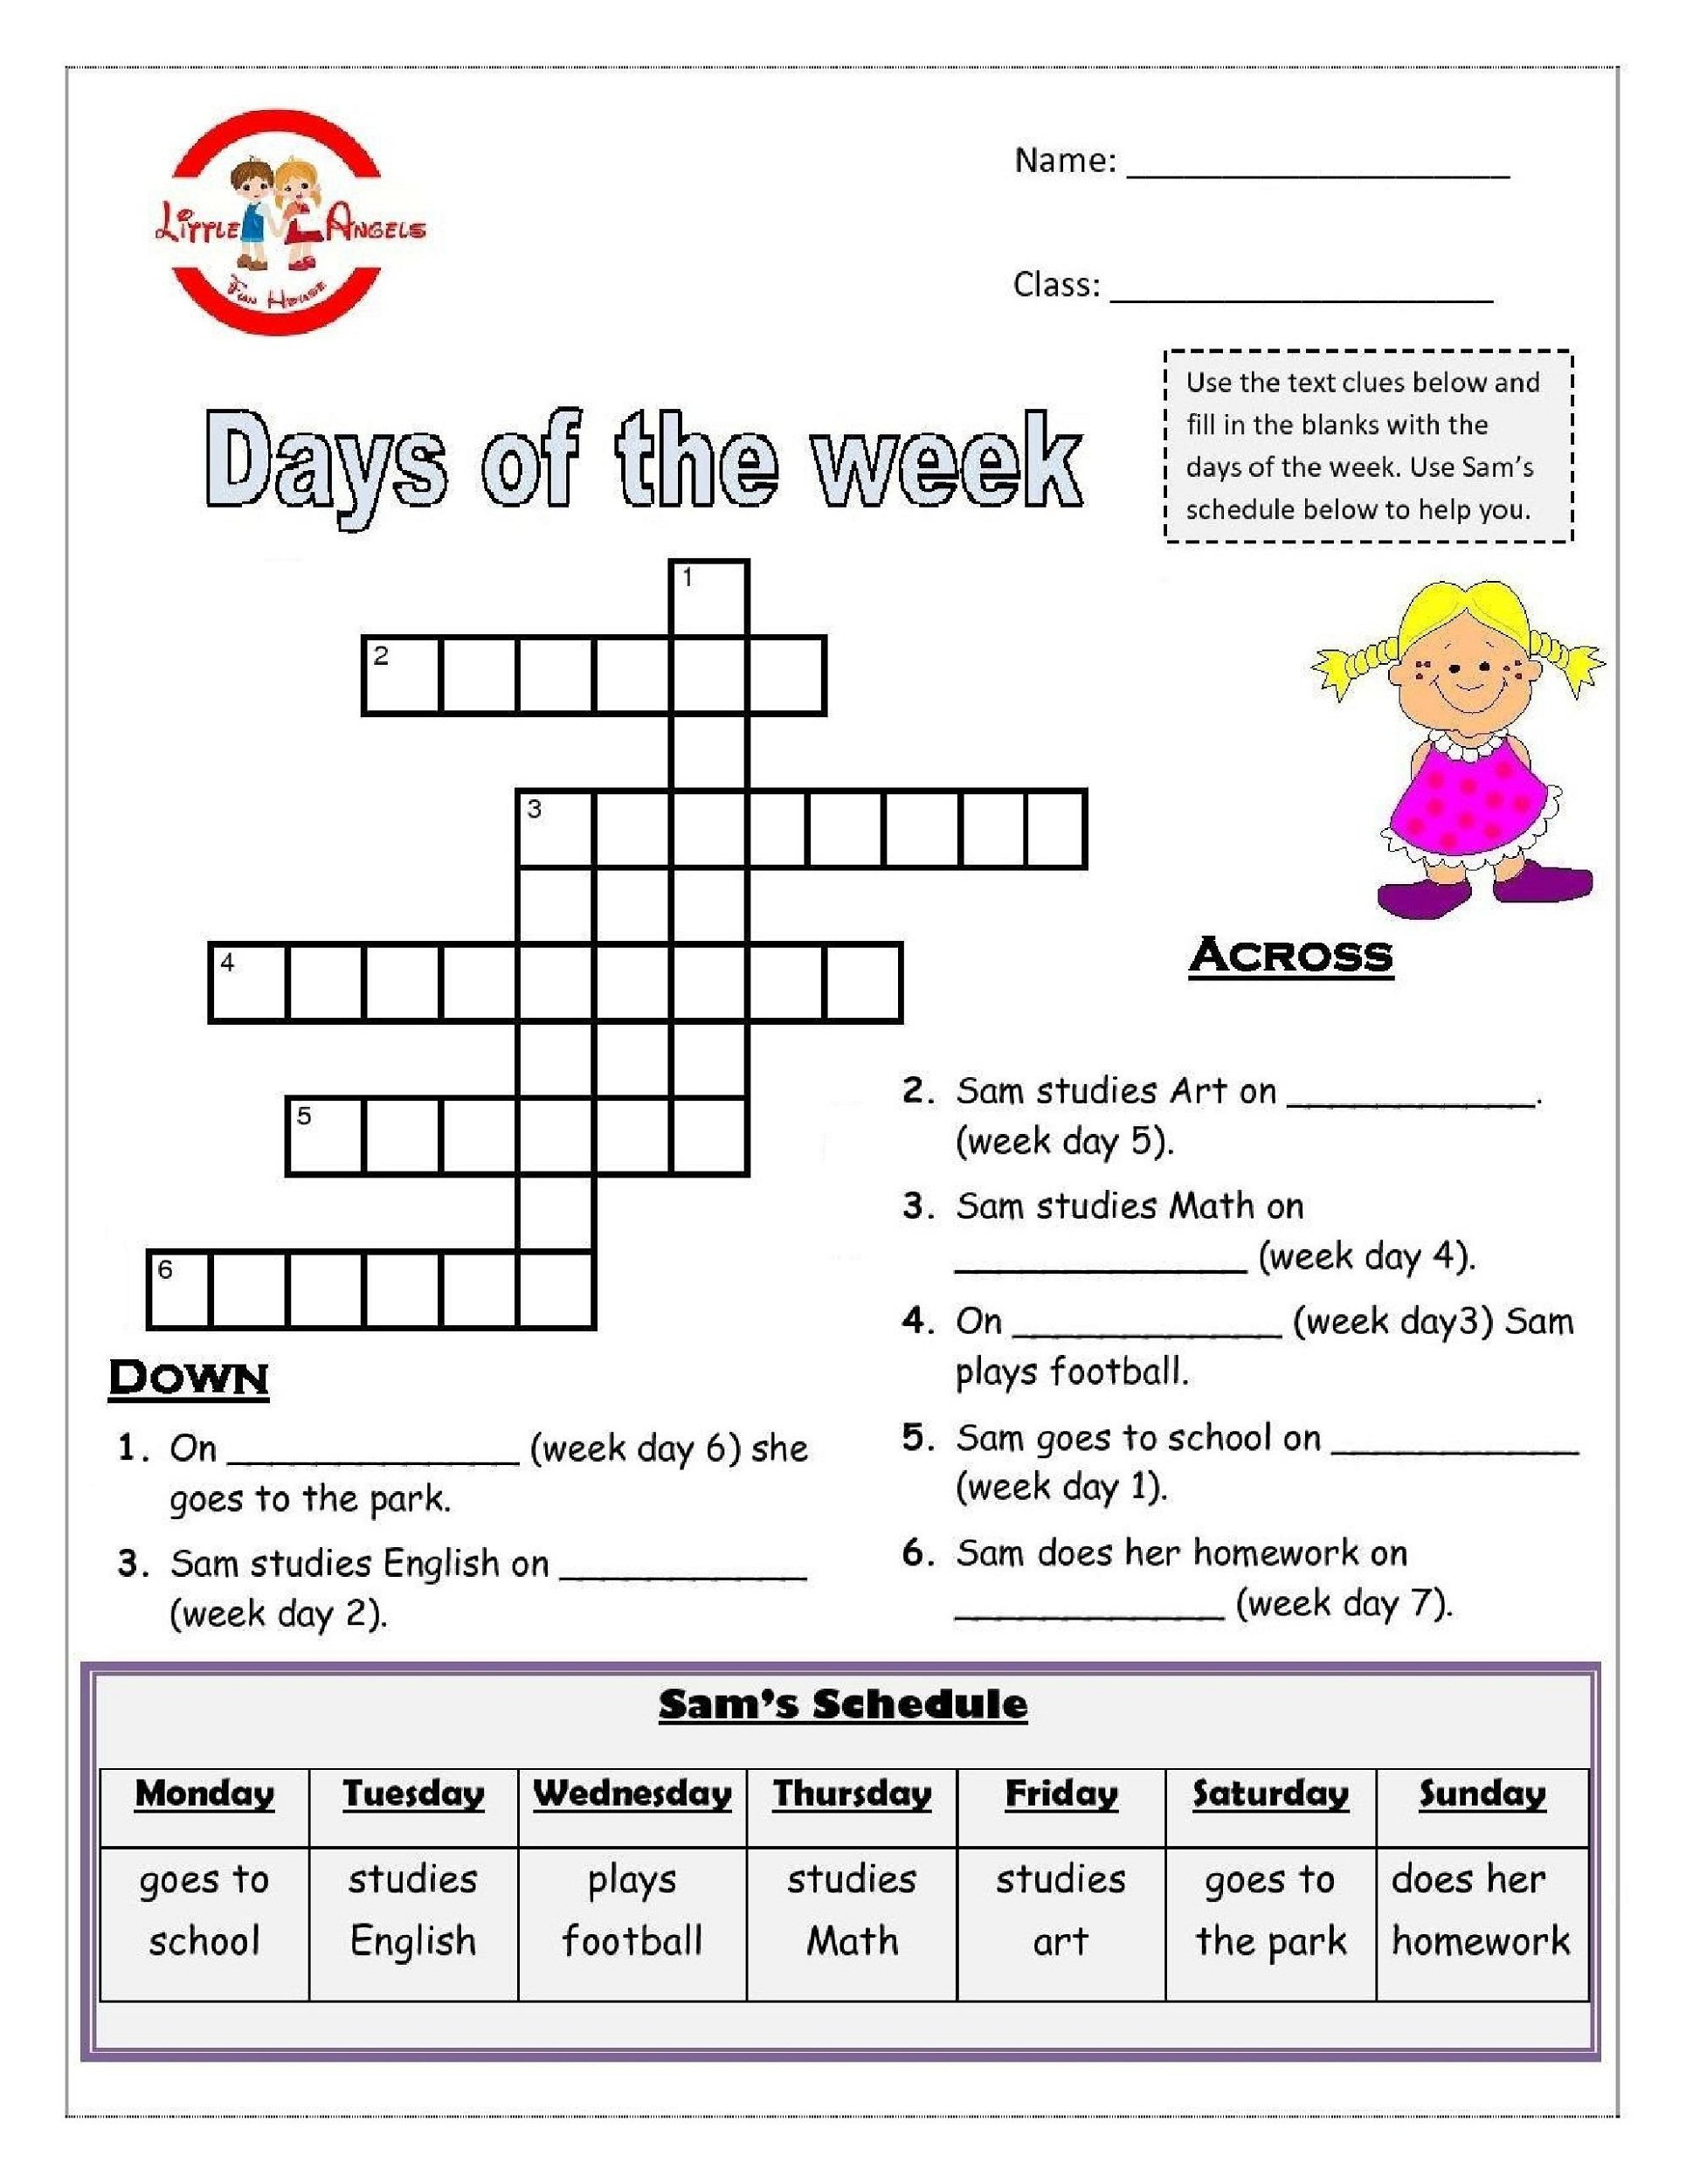 Worksheets Days Of The Week The Best Worksheets Image Collection